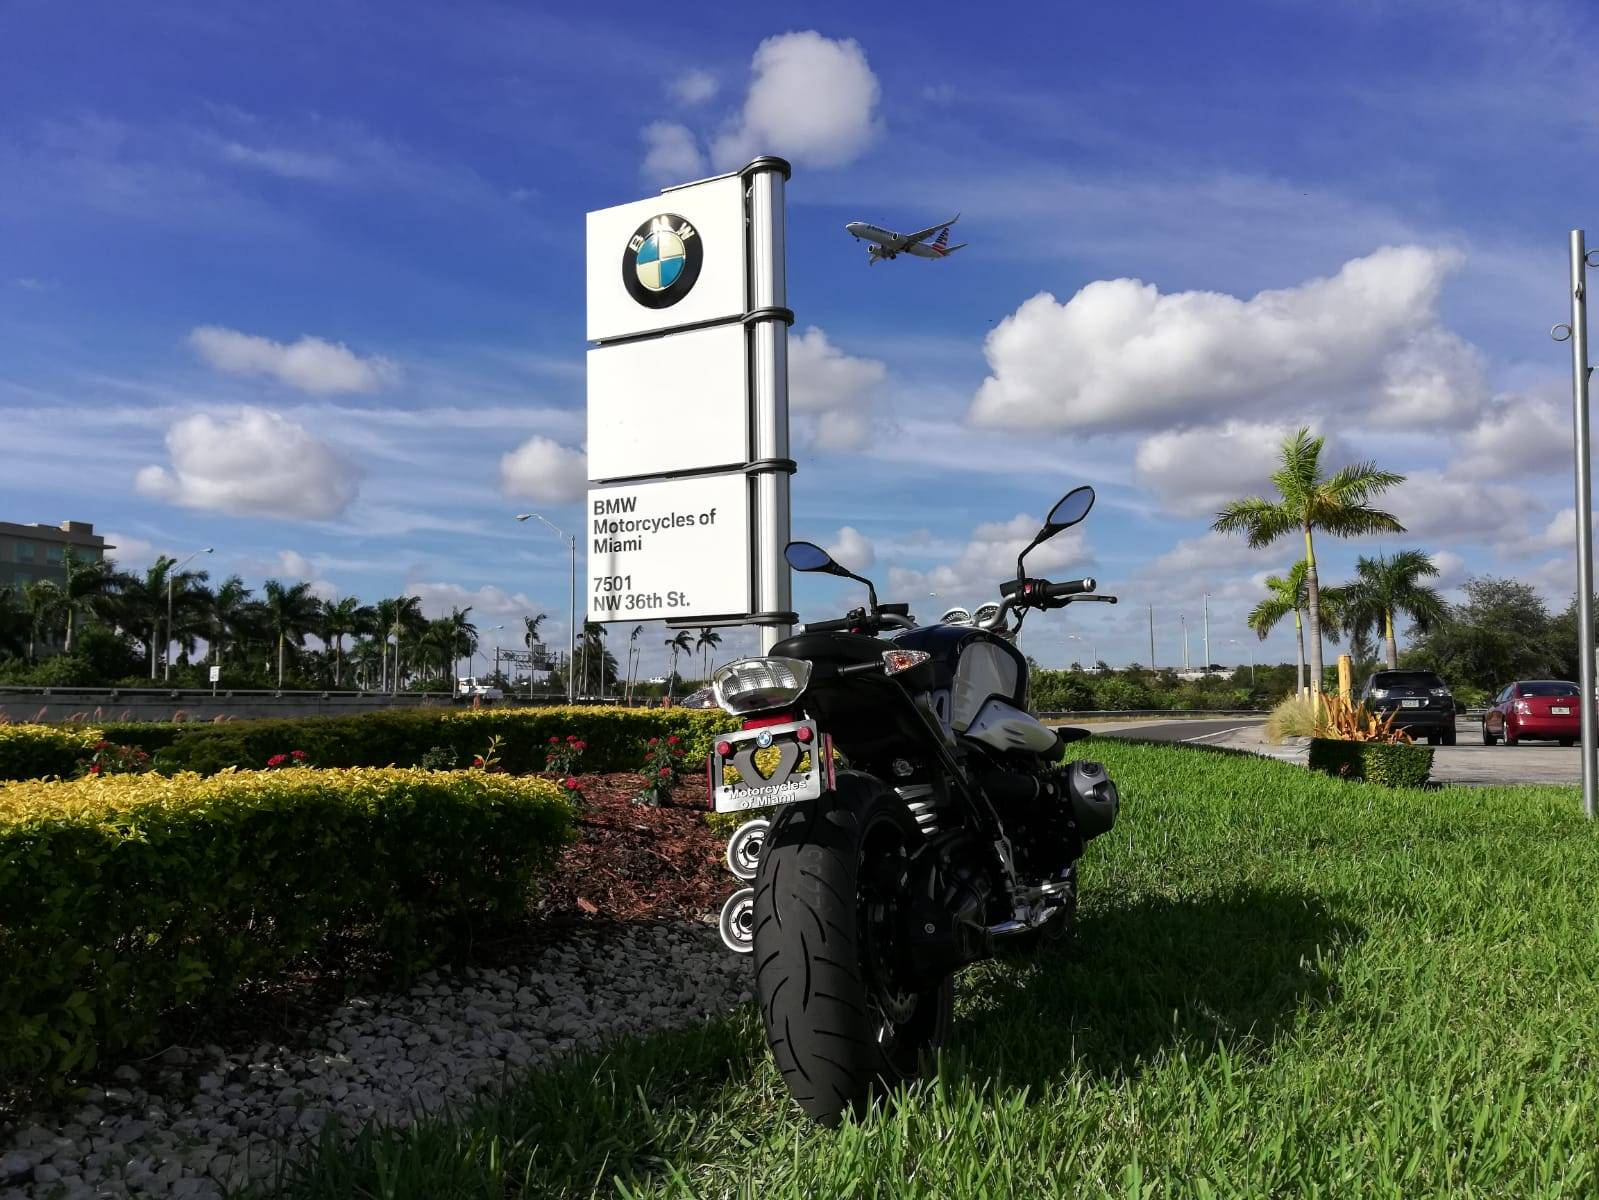 New 2019 BMW R NineT for sale, BMW for sale, BMW Motorcycle Café Racer, new BMW Caffe, Cafe Racer, BMW - Photo 8